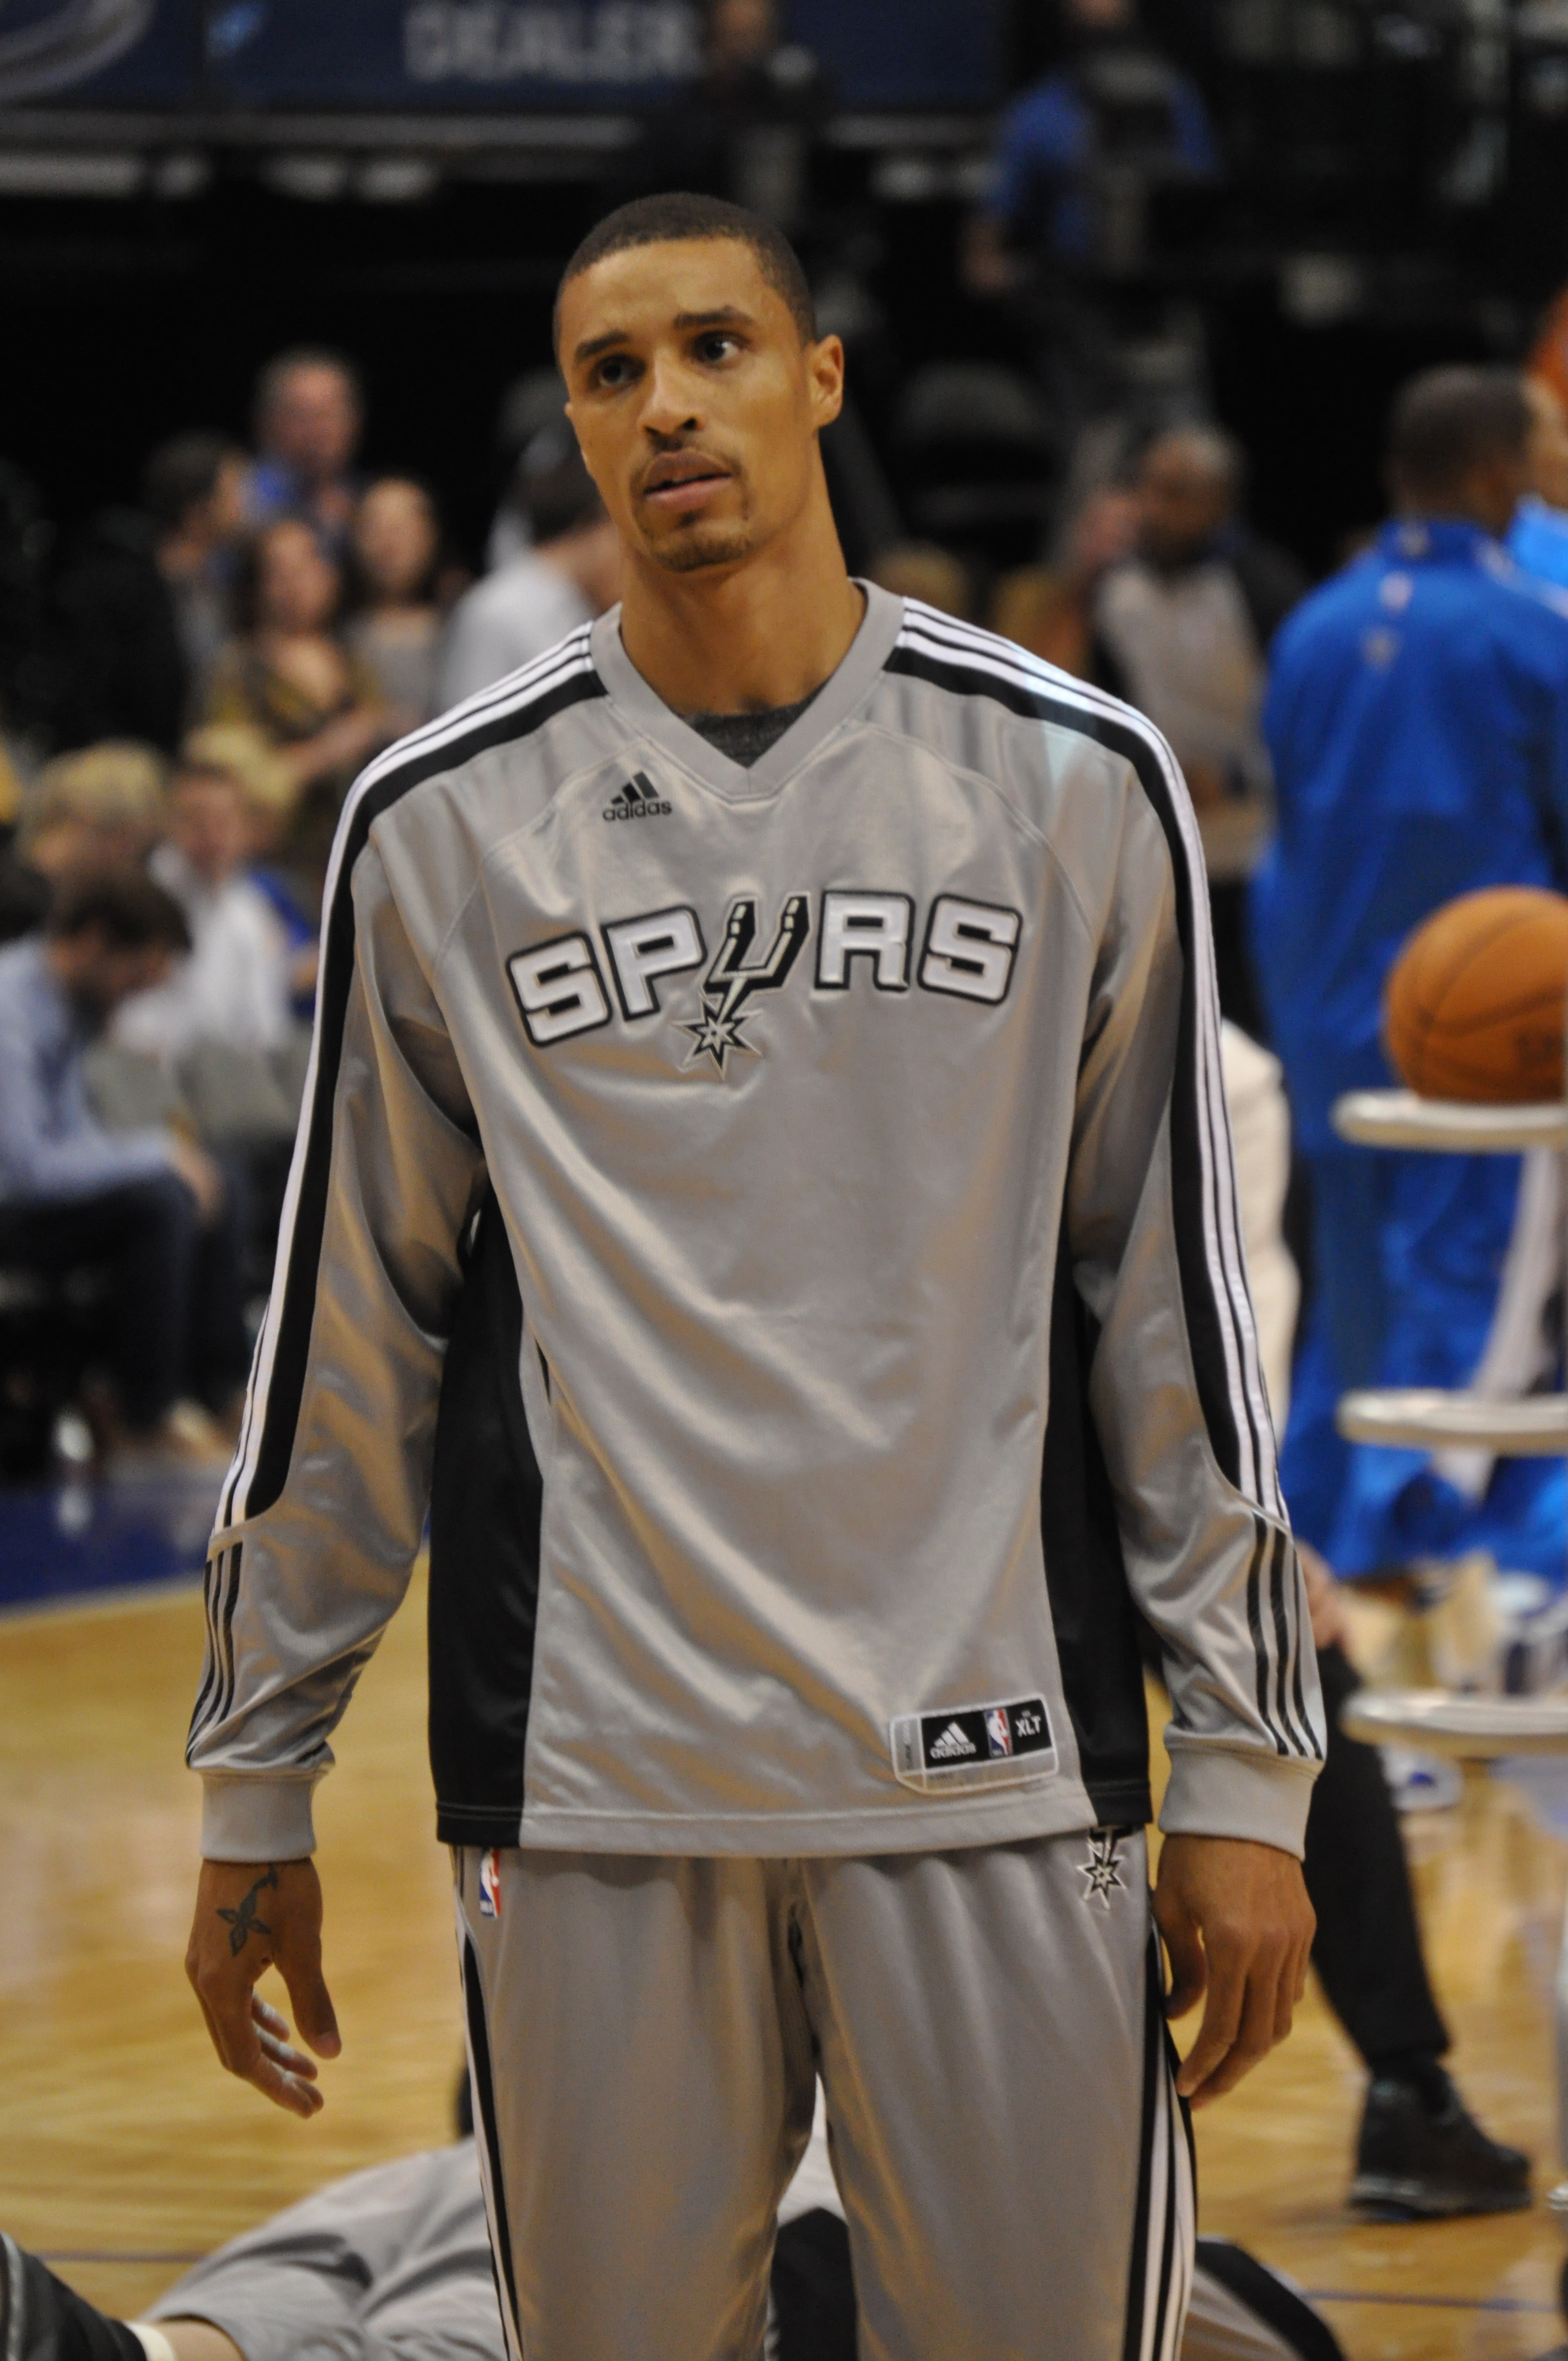 Spurs george hill nude photo